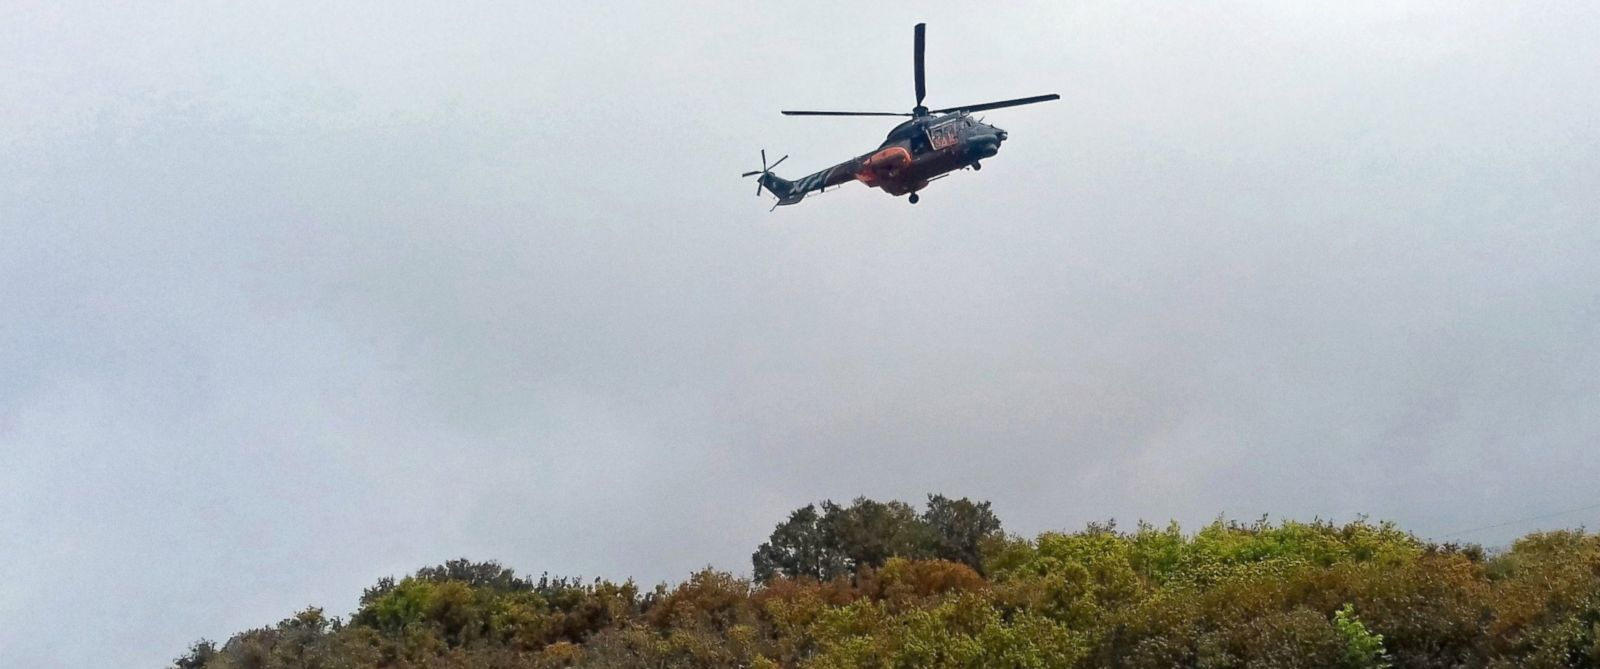 PHOTO: A military helicopter flies over the area where a UH-1H military helicopter crashed in the region of Elassona, Greece, April 19, 2017.